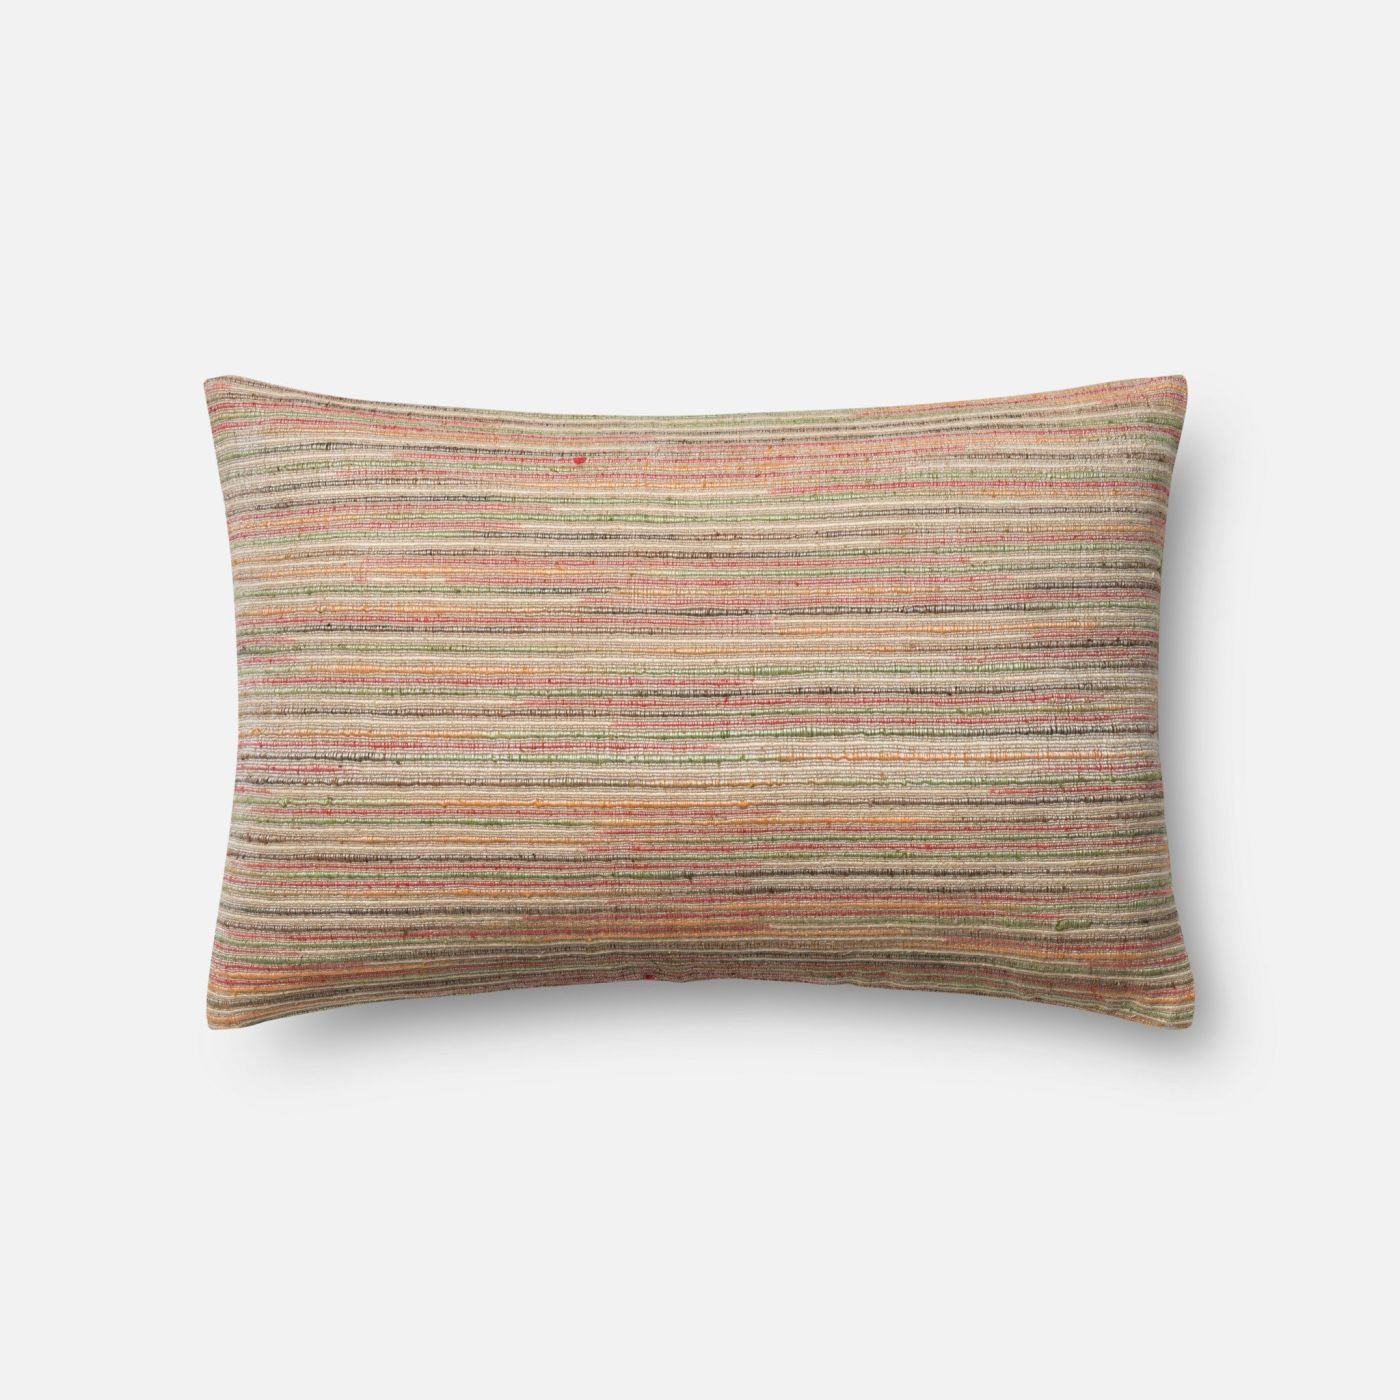 Throw Pillows Under 5 Dollars : Loloi Rugs Loloi Multi Decorative Throw Pillow (P0445) DSETP0445ML00PIL3. Only $79.00 at ...